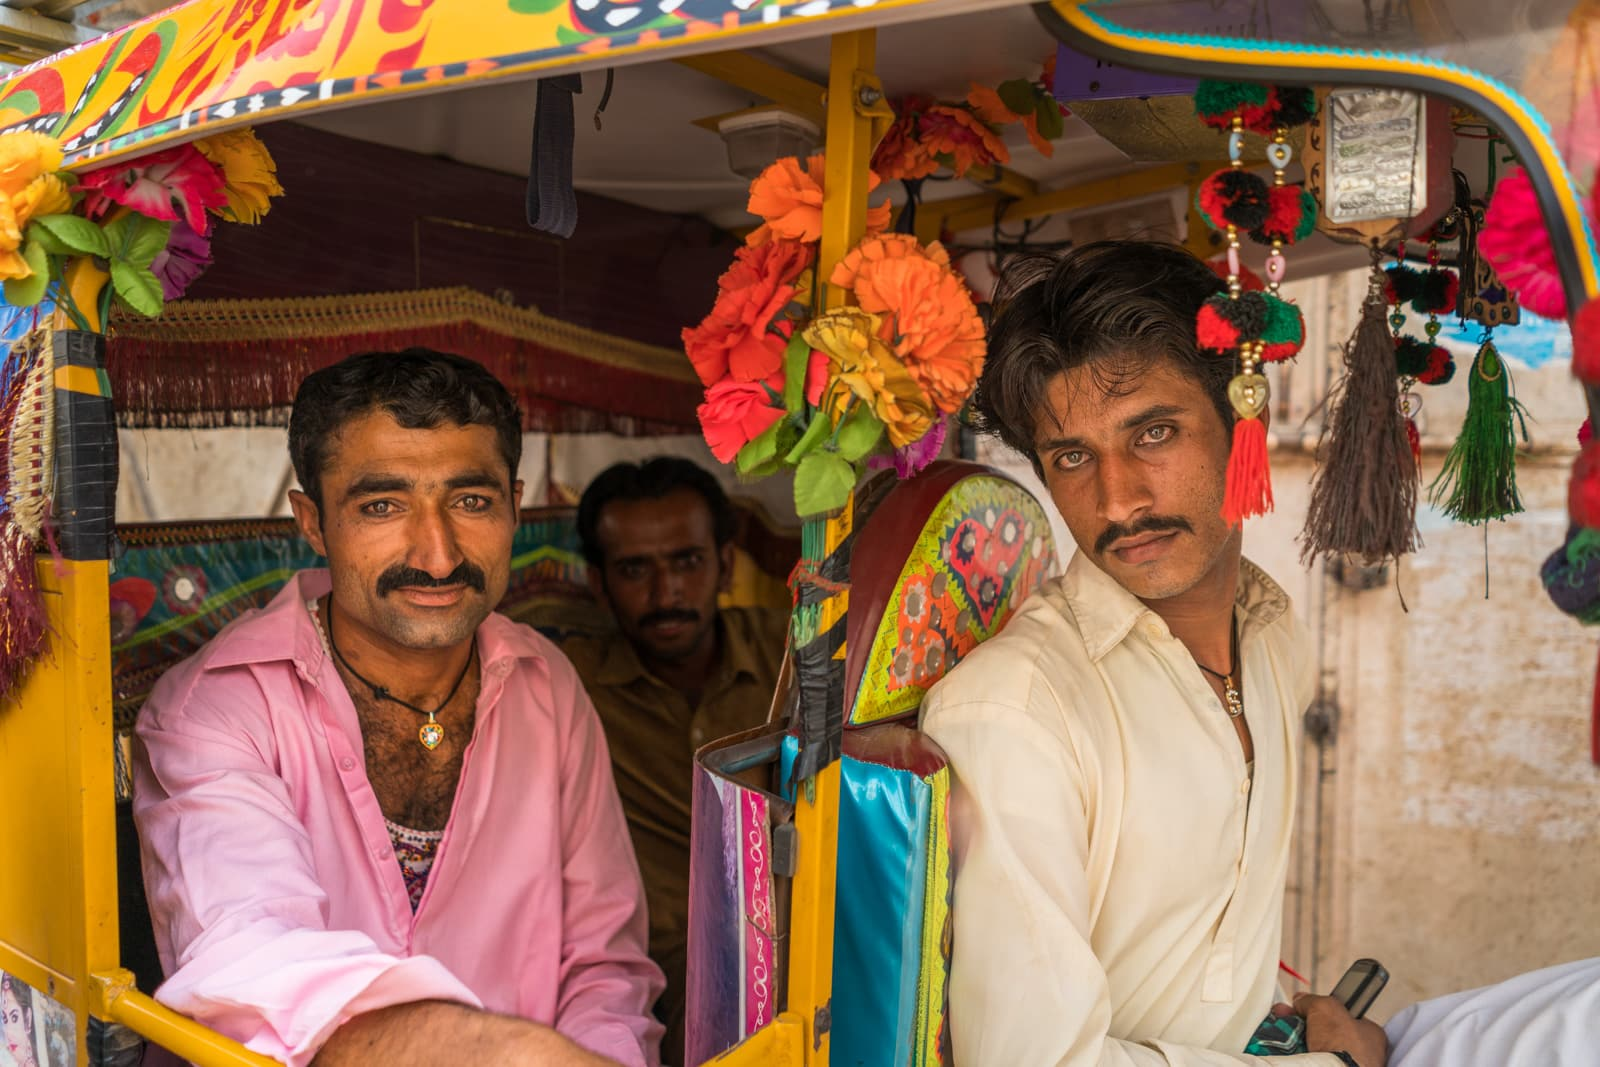 Sindh travel guide - Sindhi men staring - Lost With Purpose travel blog